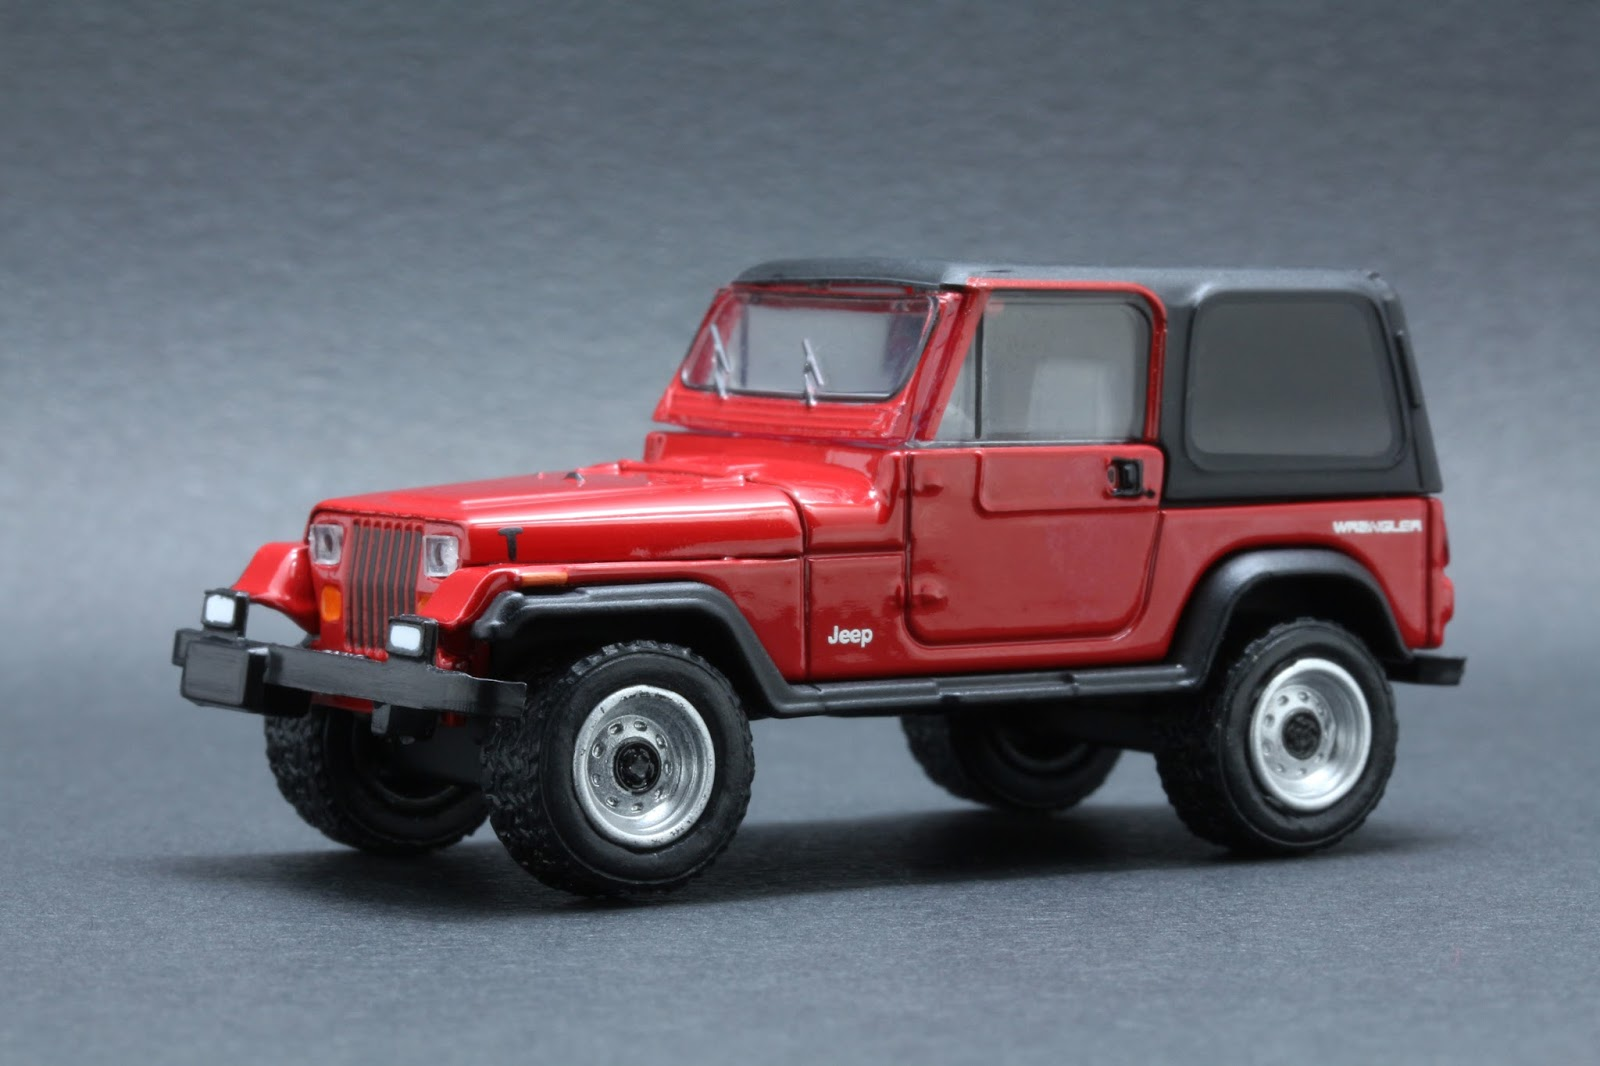 diecast hobbist 1992 jeep wrangler hard top yj. Cars Review. Best American Auto & Cars Review